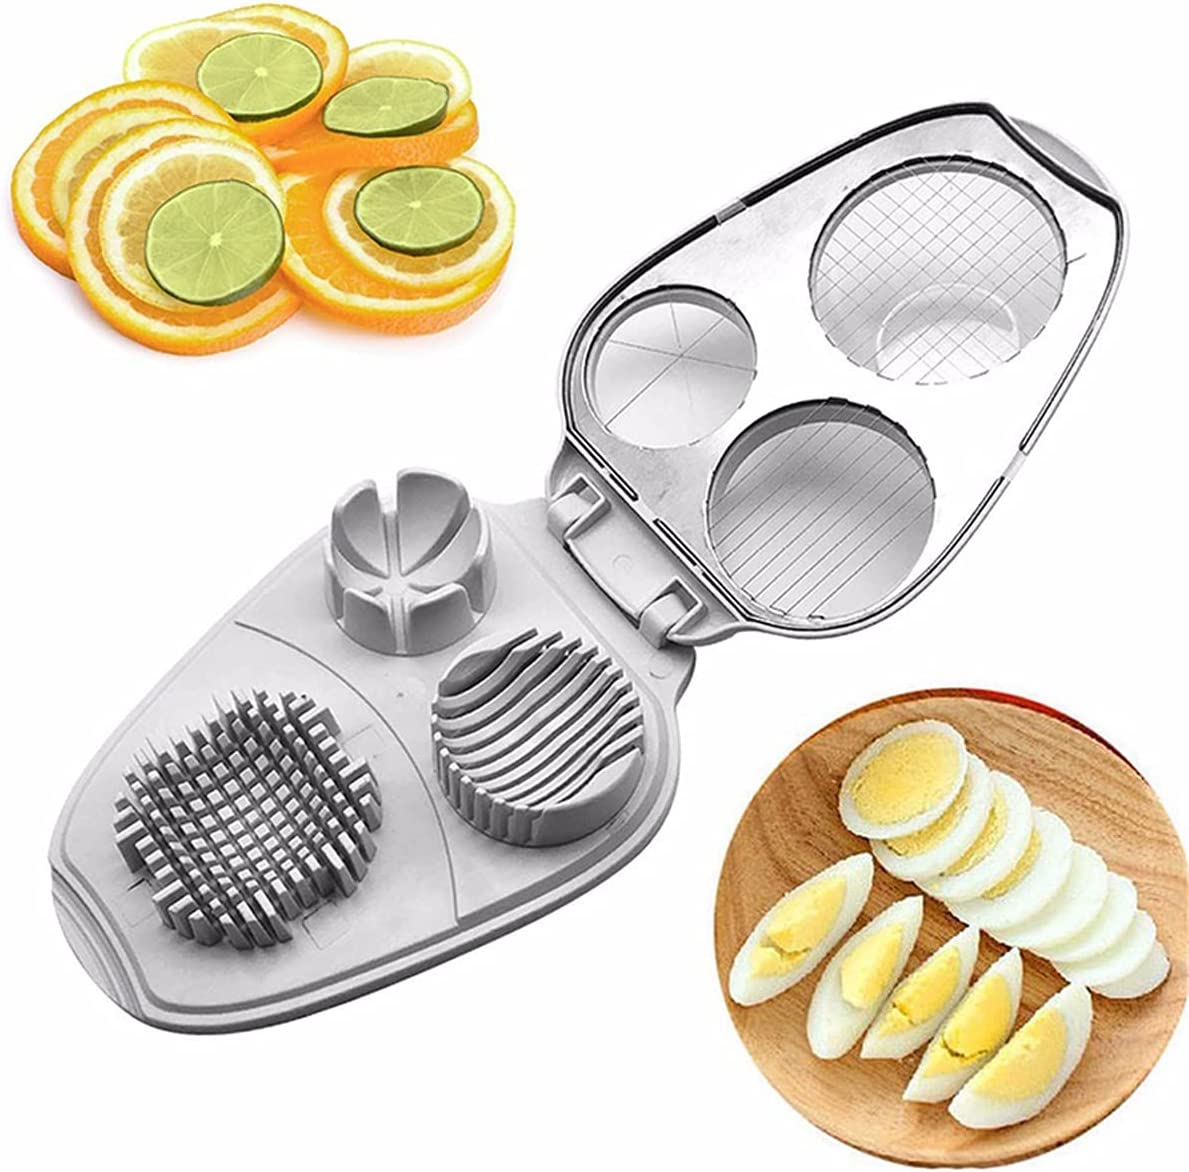 HARTI Multifunctional Egg Cutter Slicer Petal San Francisco Mall Max 48% OFF 3-in-1